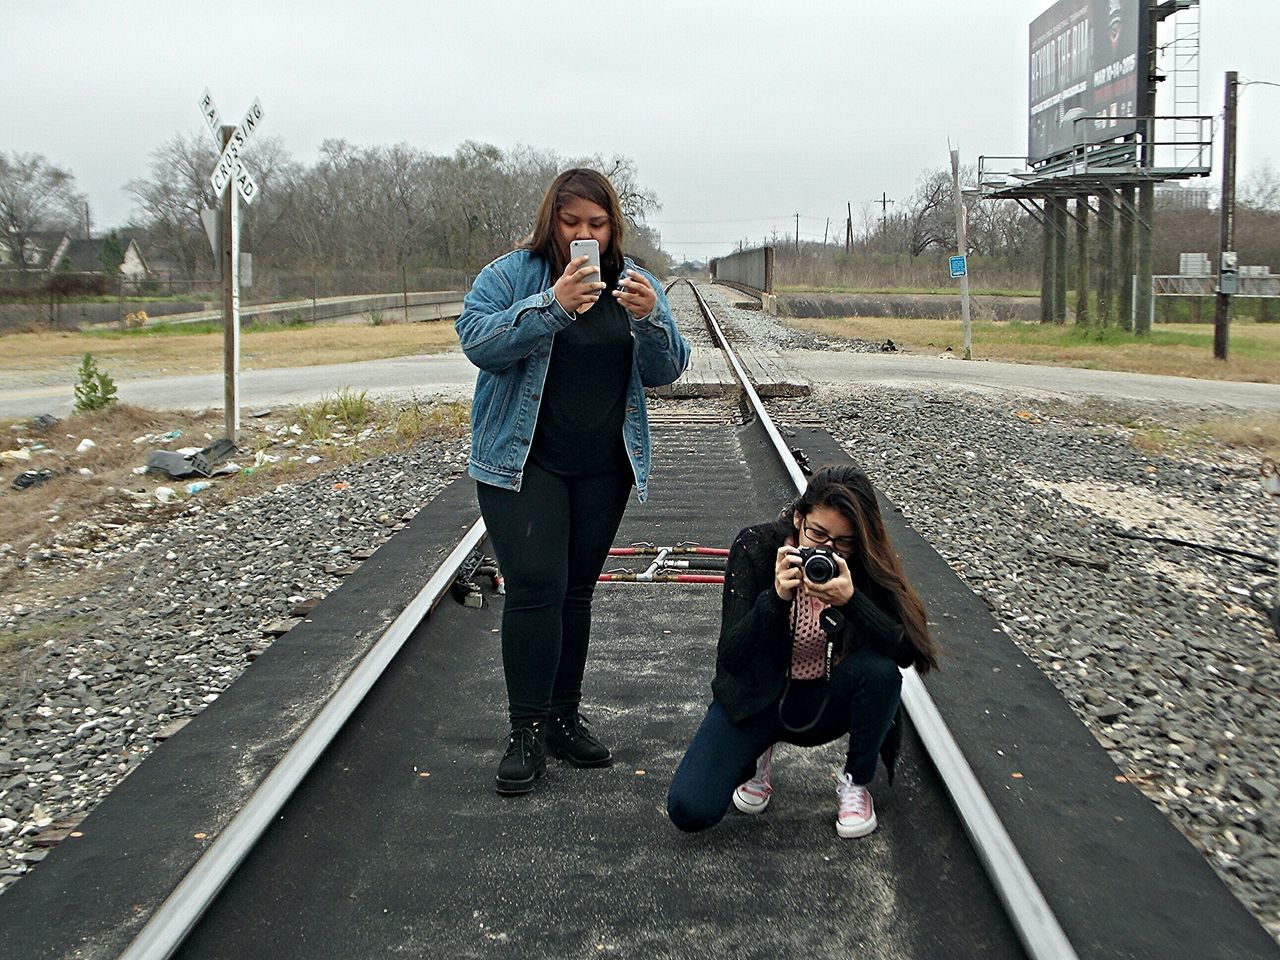 My Unique Style My Squad's Style Hipster The Portraitist - 2014 EyeEm Awards New Look Railroad BIDHouston Houston